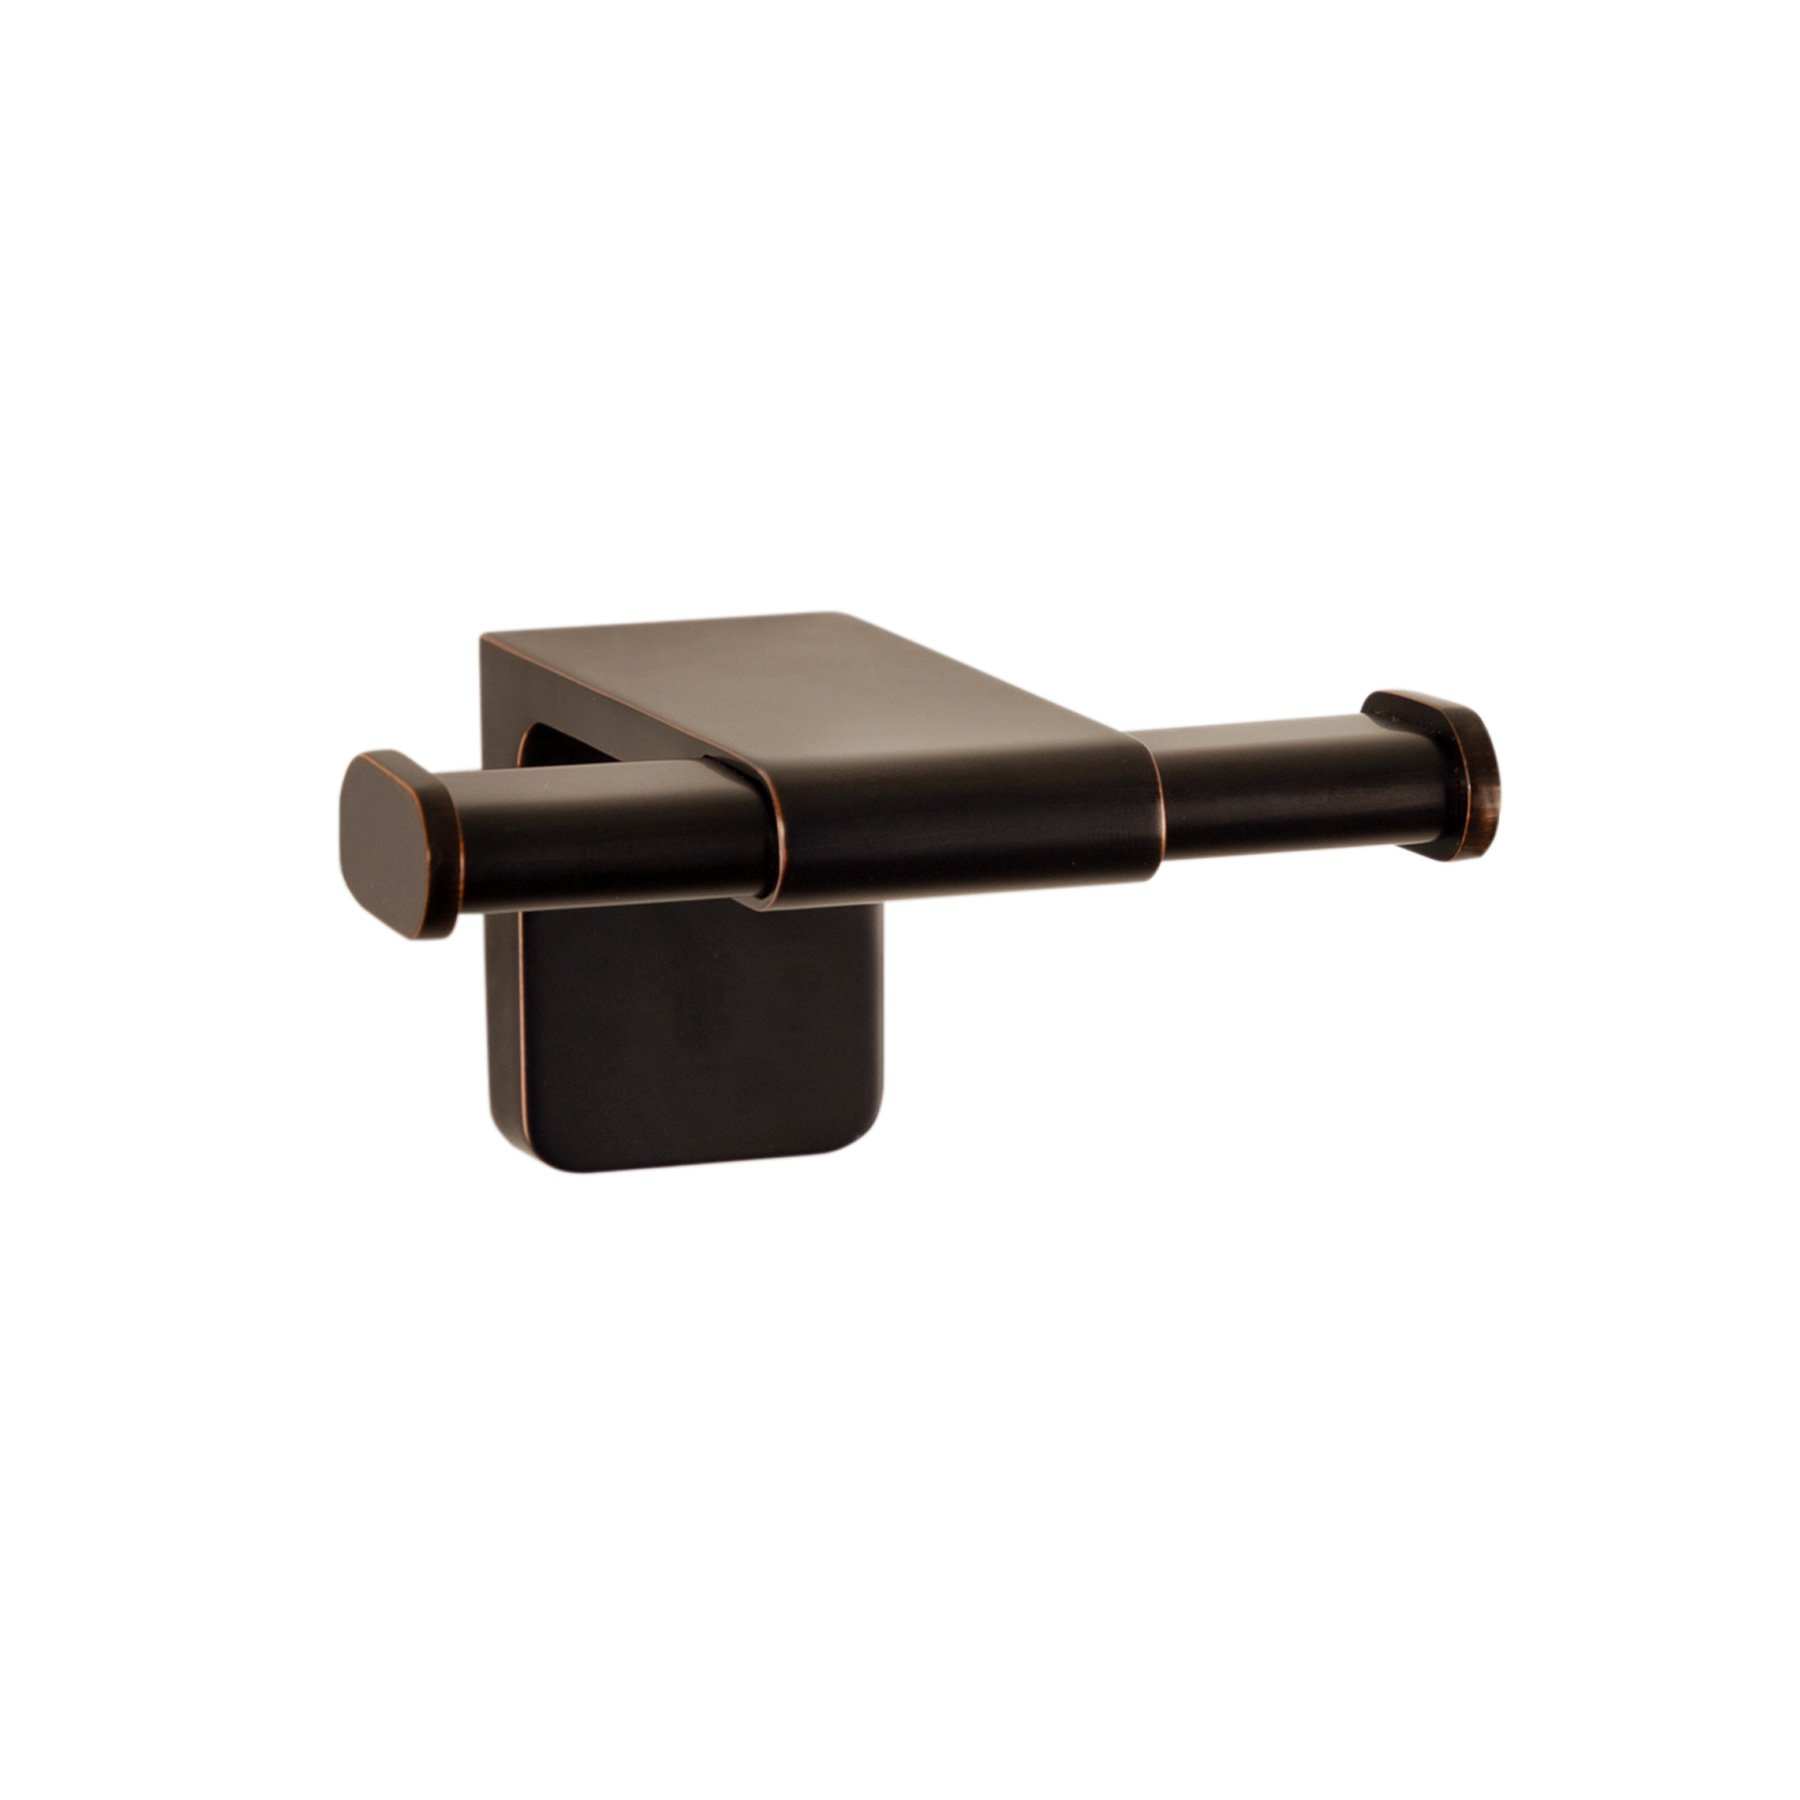 MAYKKE Dash 4-Piece Bathroom Essentials Hardware Accessory Set | 24'' Towel Bar, Double Robe Towel Hook, Towel Ring, & Toilet Paper Holder | 3 Colors to Choose From | Oil-Rubbed Bronze, DLA1002493 by Maykke (Image #4)